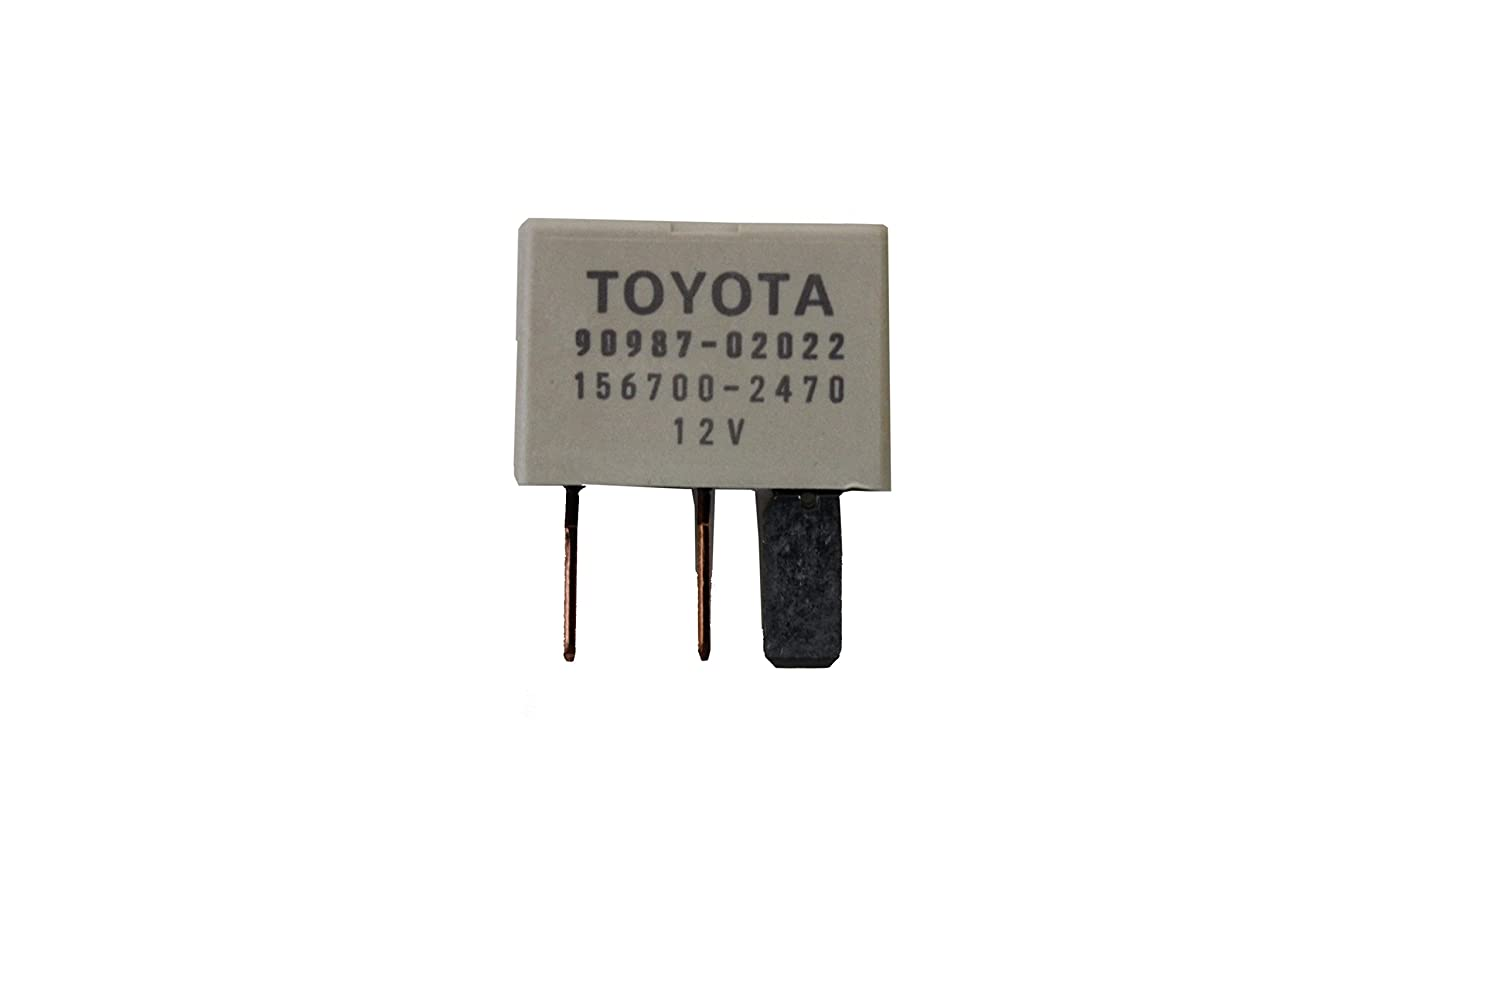 Toyota Sienna Service Manual: Rear Air Conditioning Relay Circuit